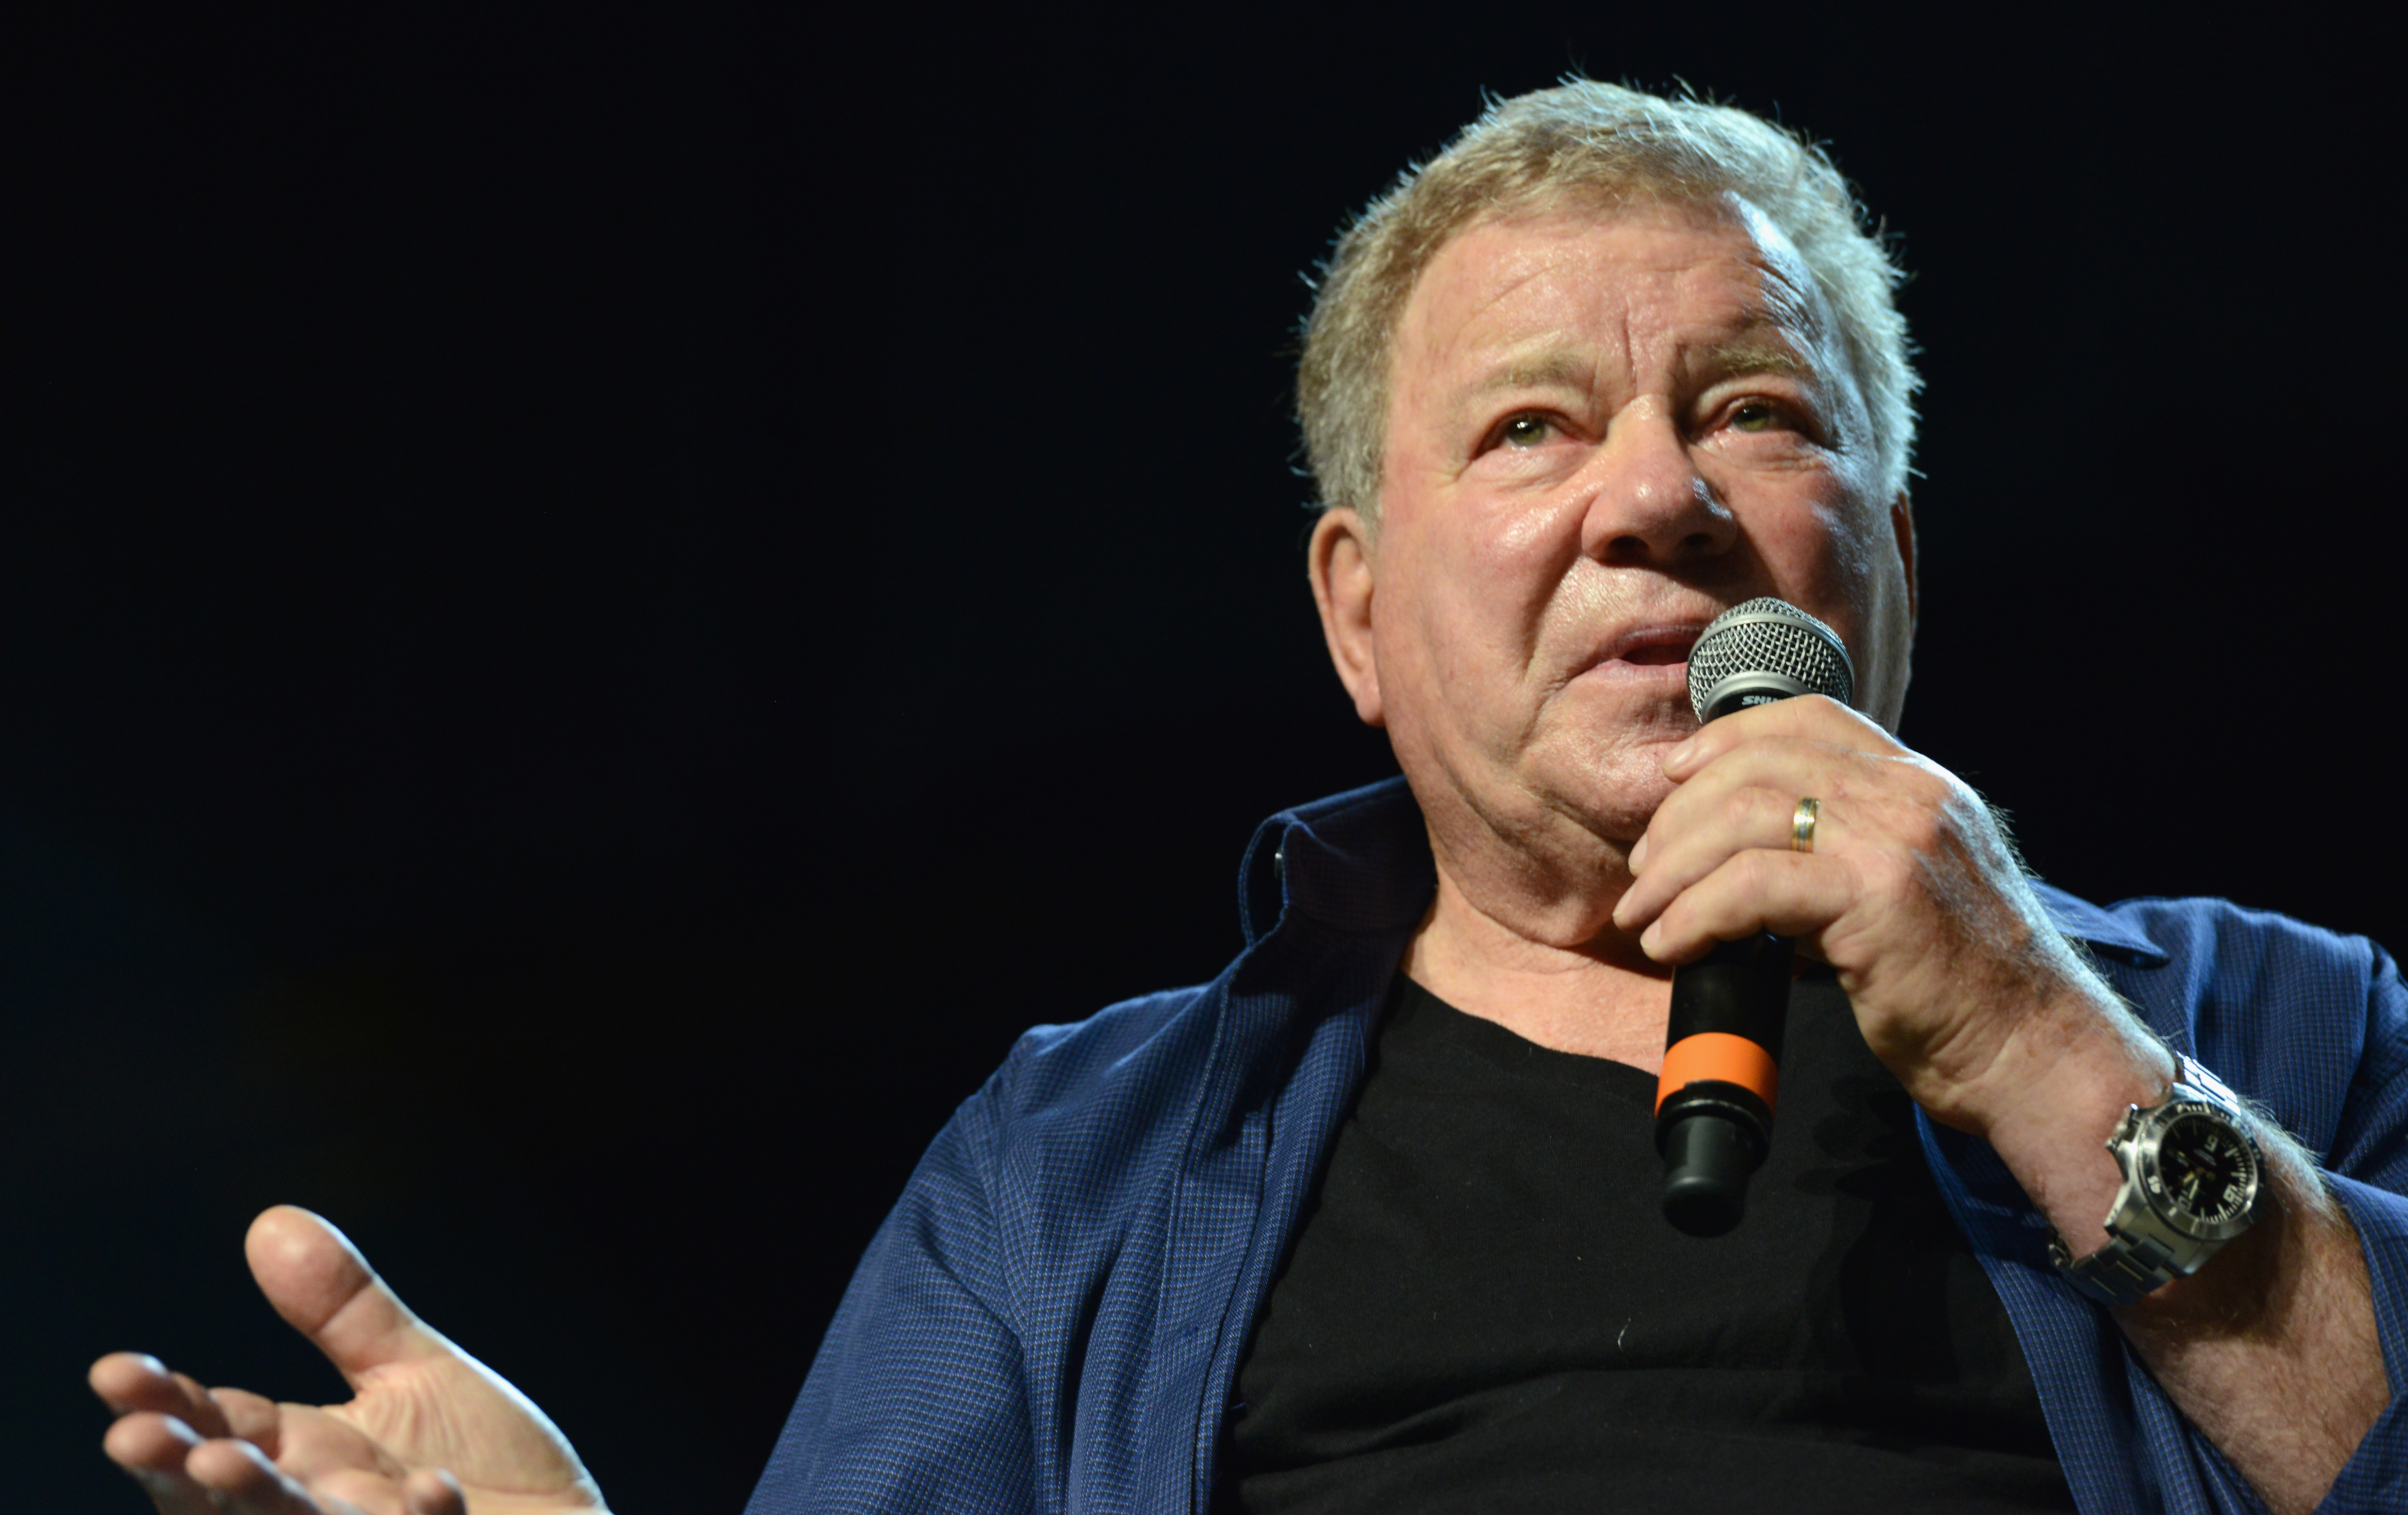 william shatner joins calls for carrie fisher to gain walk